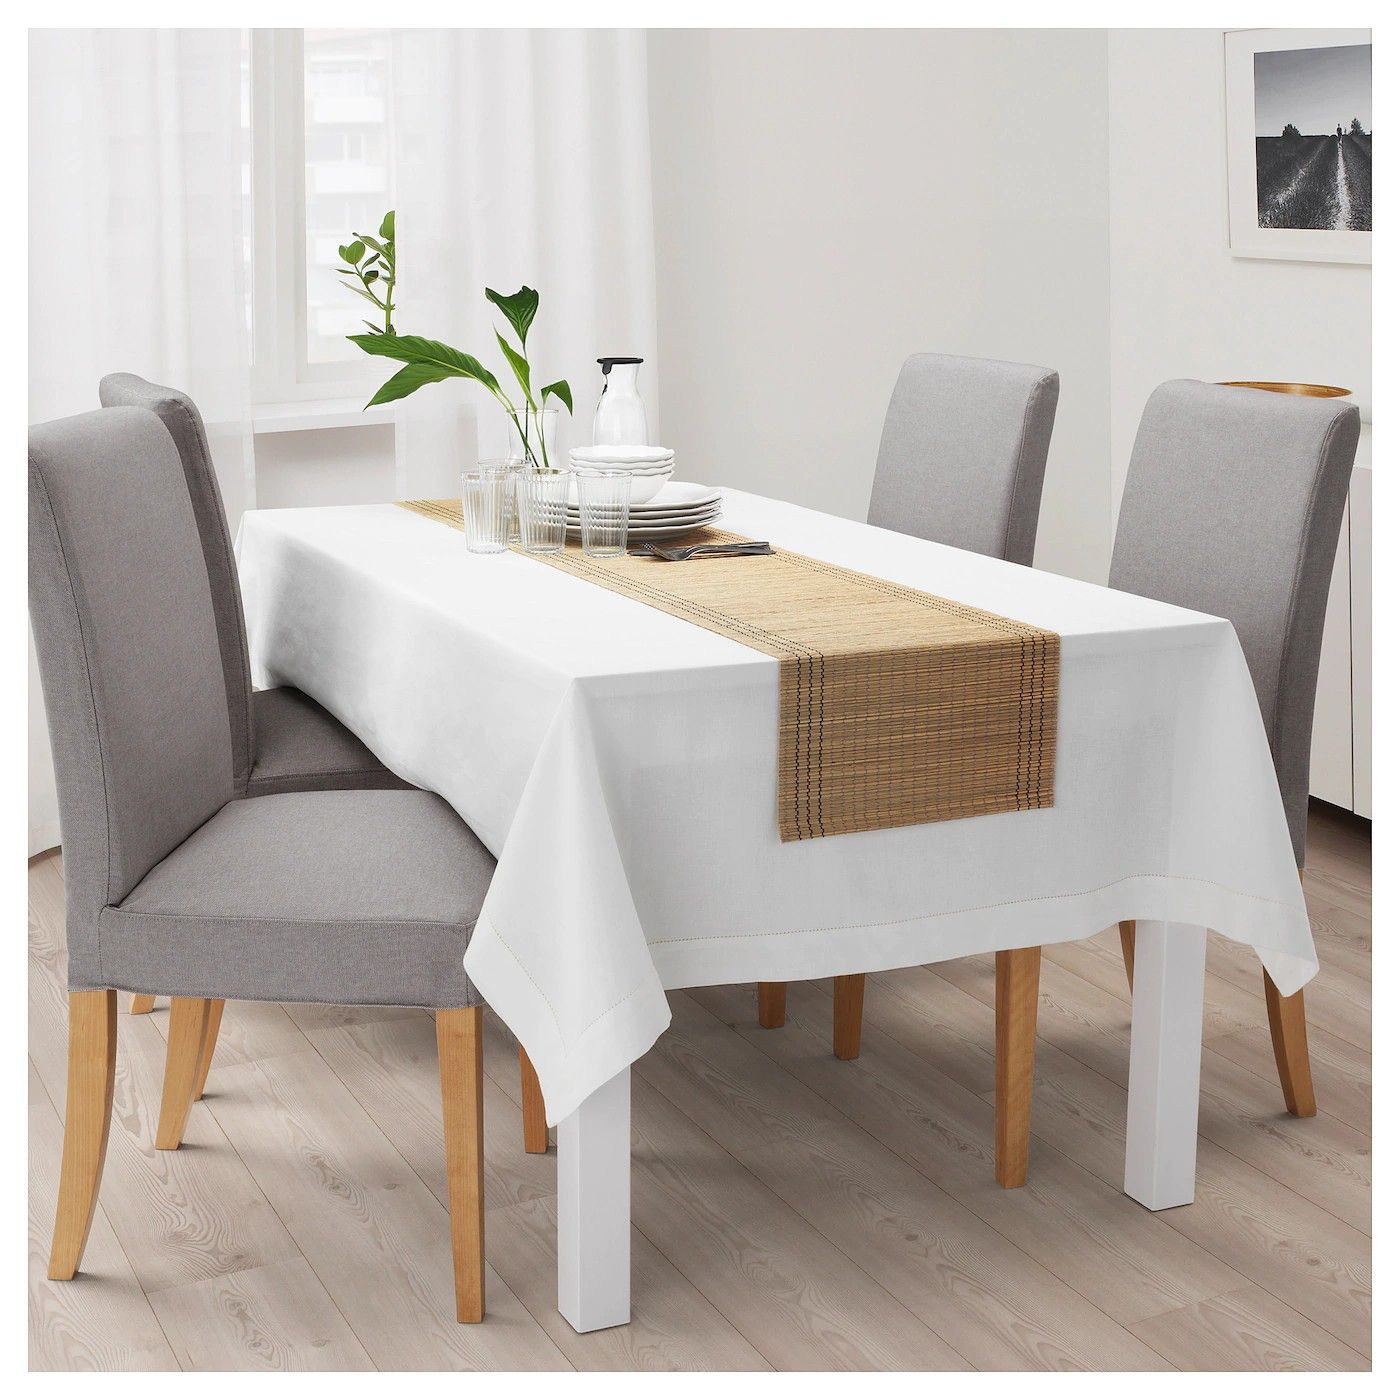 Home Staging Dining Room Table: Pin By Basia On I'd Buy That.